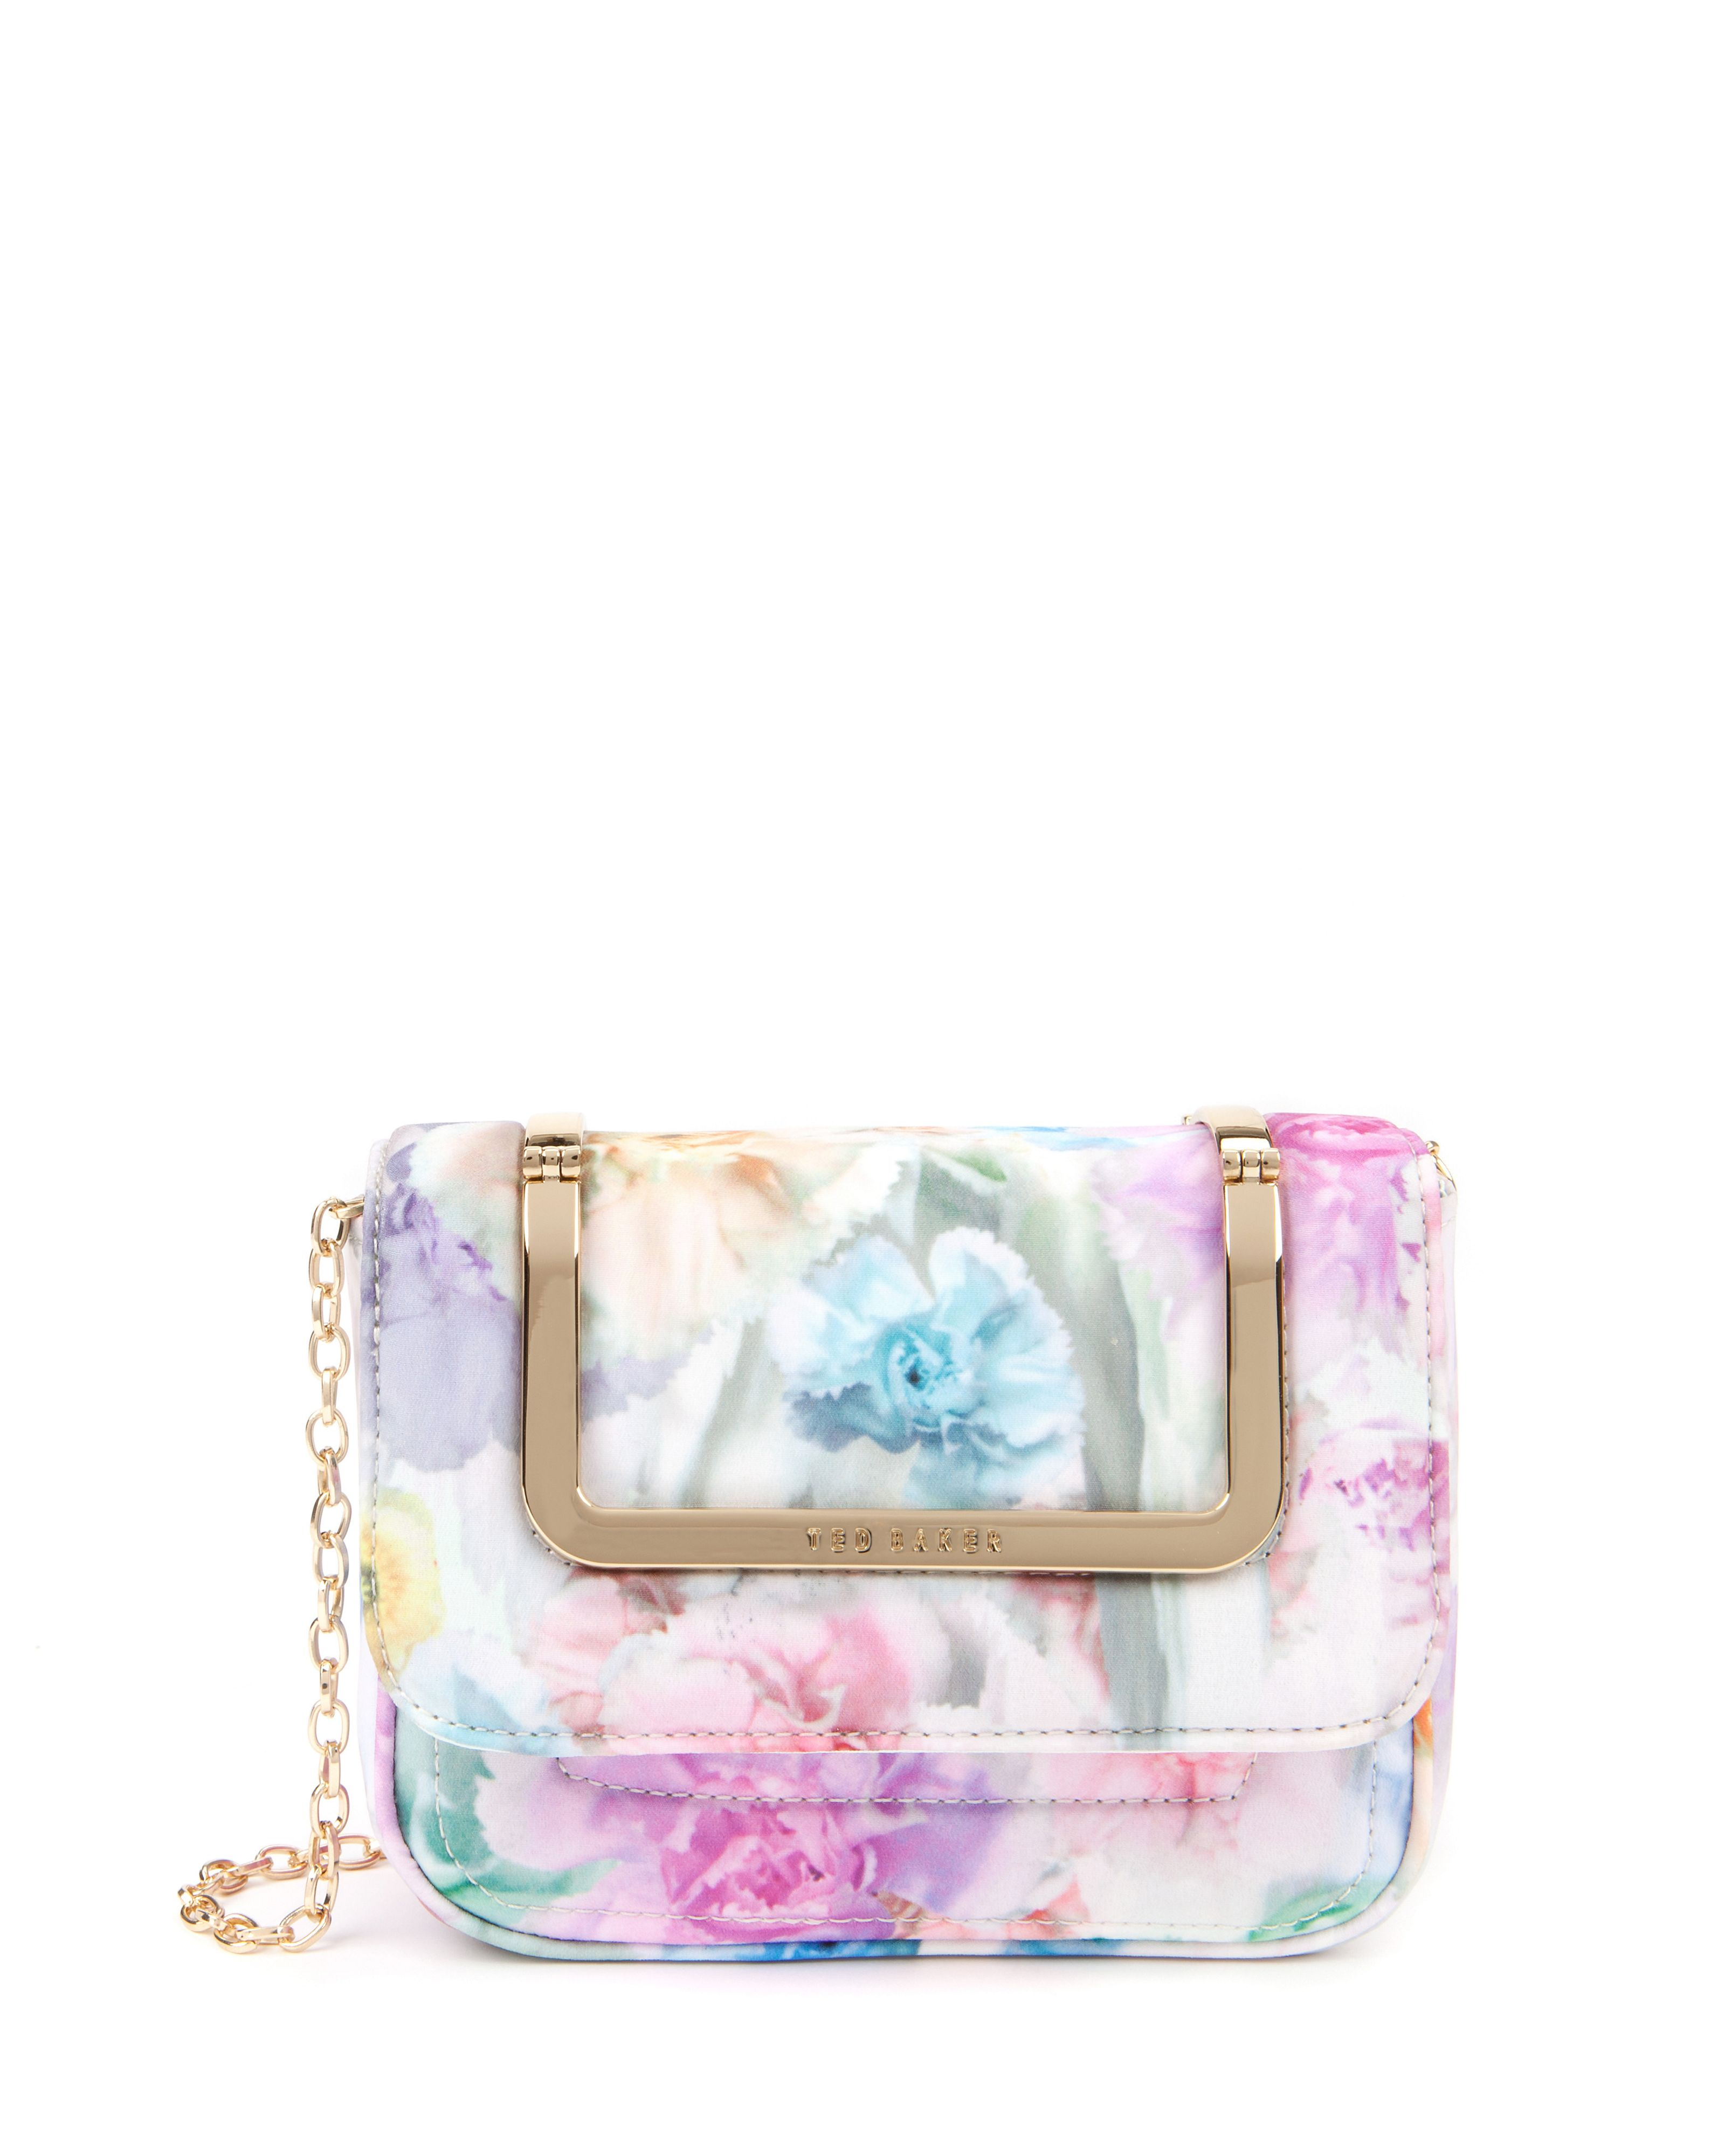 Sweeta sugar sweet printed clutch bag